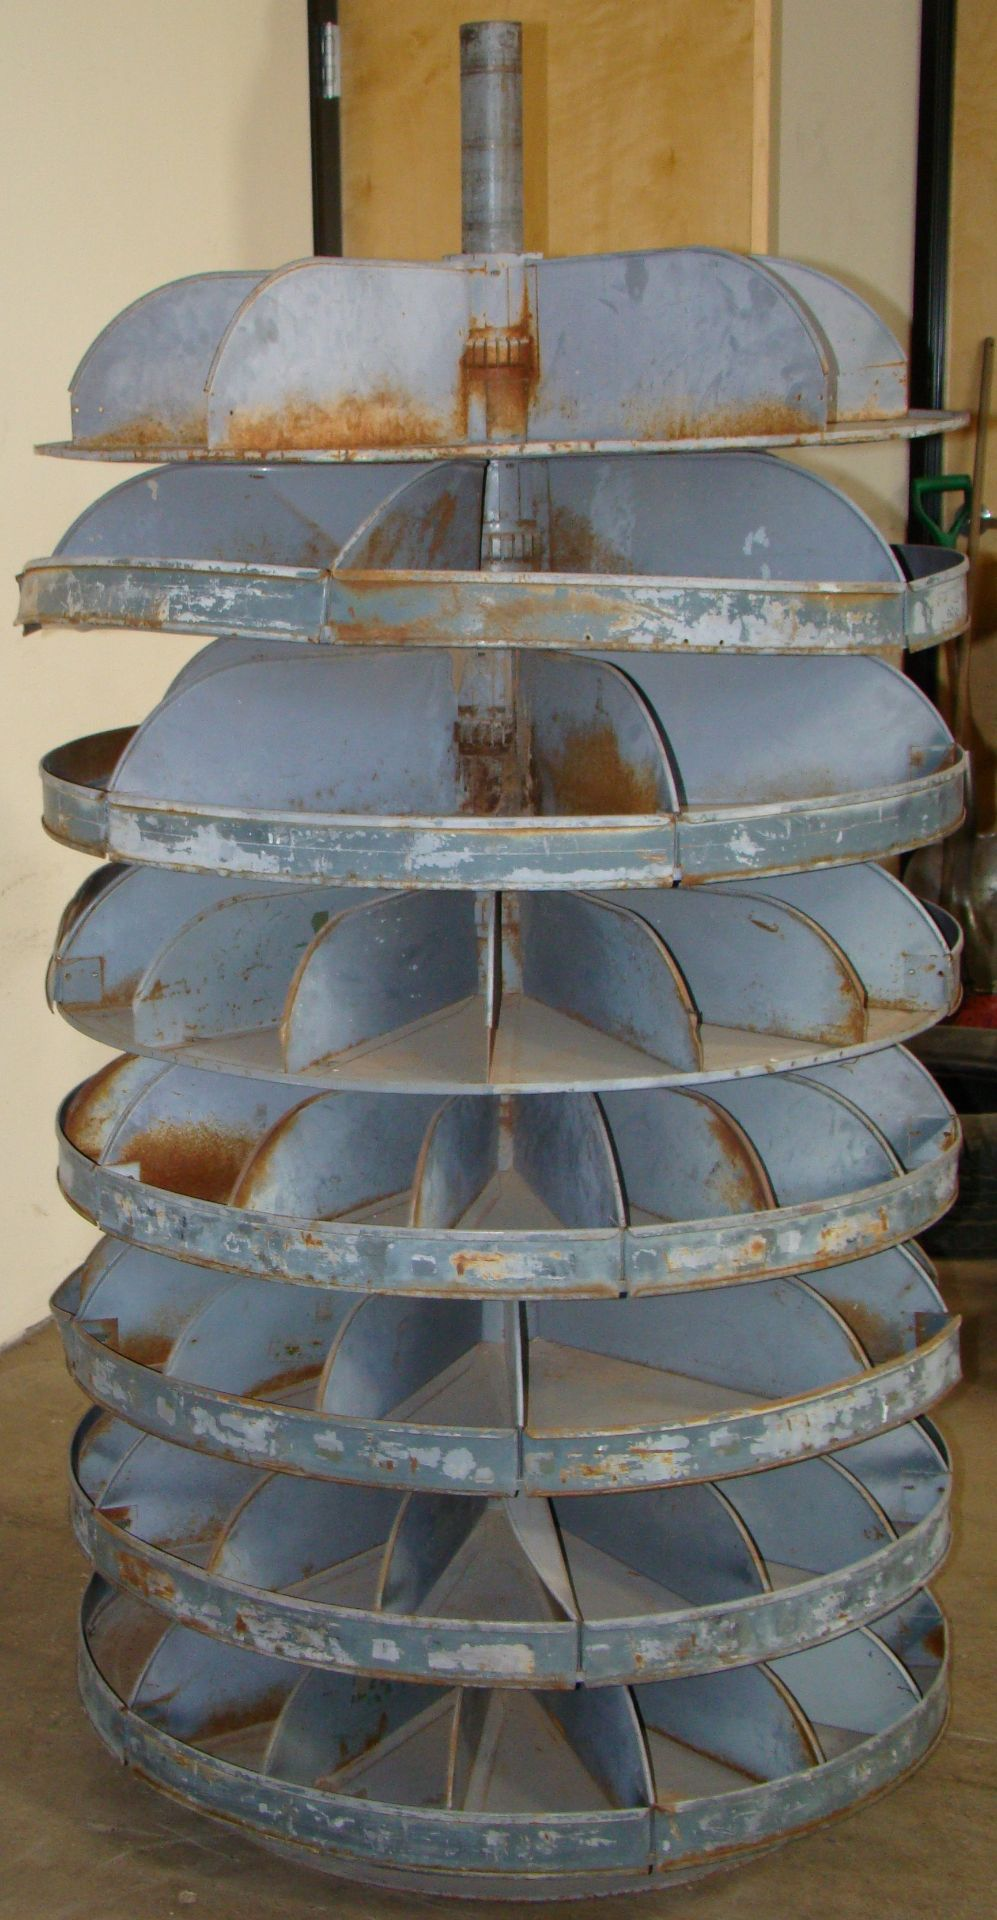 "Lot 29 - Revolving Bin Bolt Carousel - 8 Shelves 66""h x 36""d"